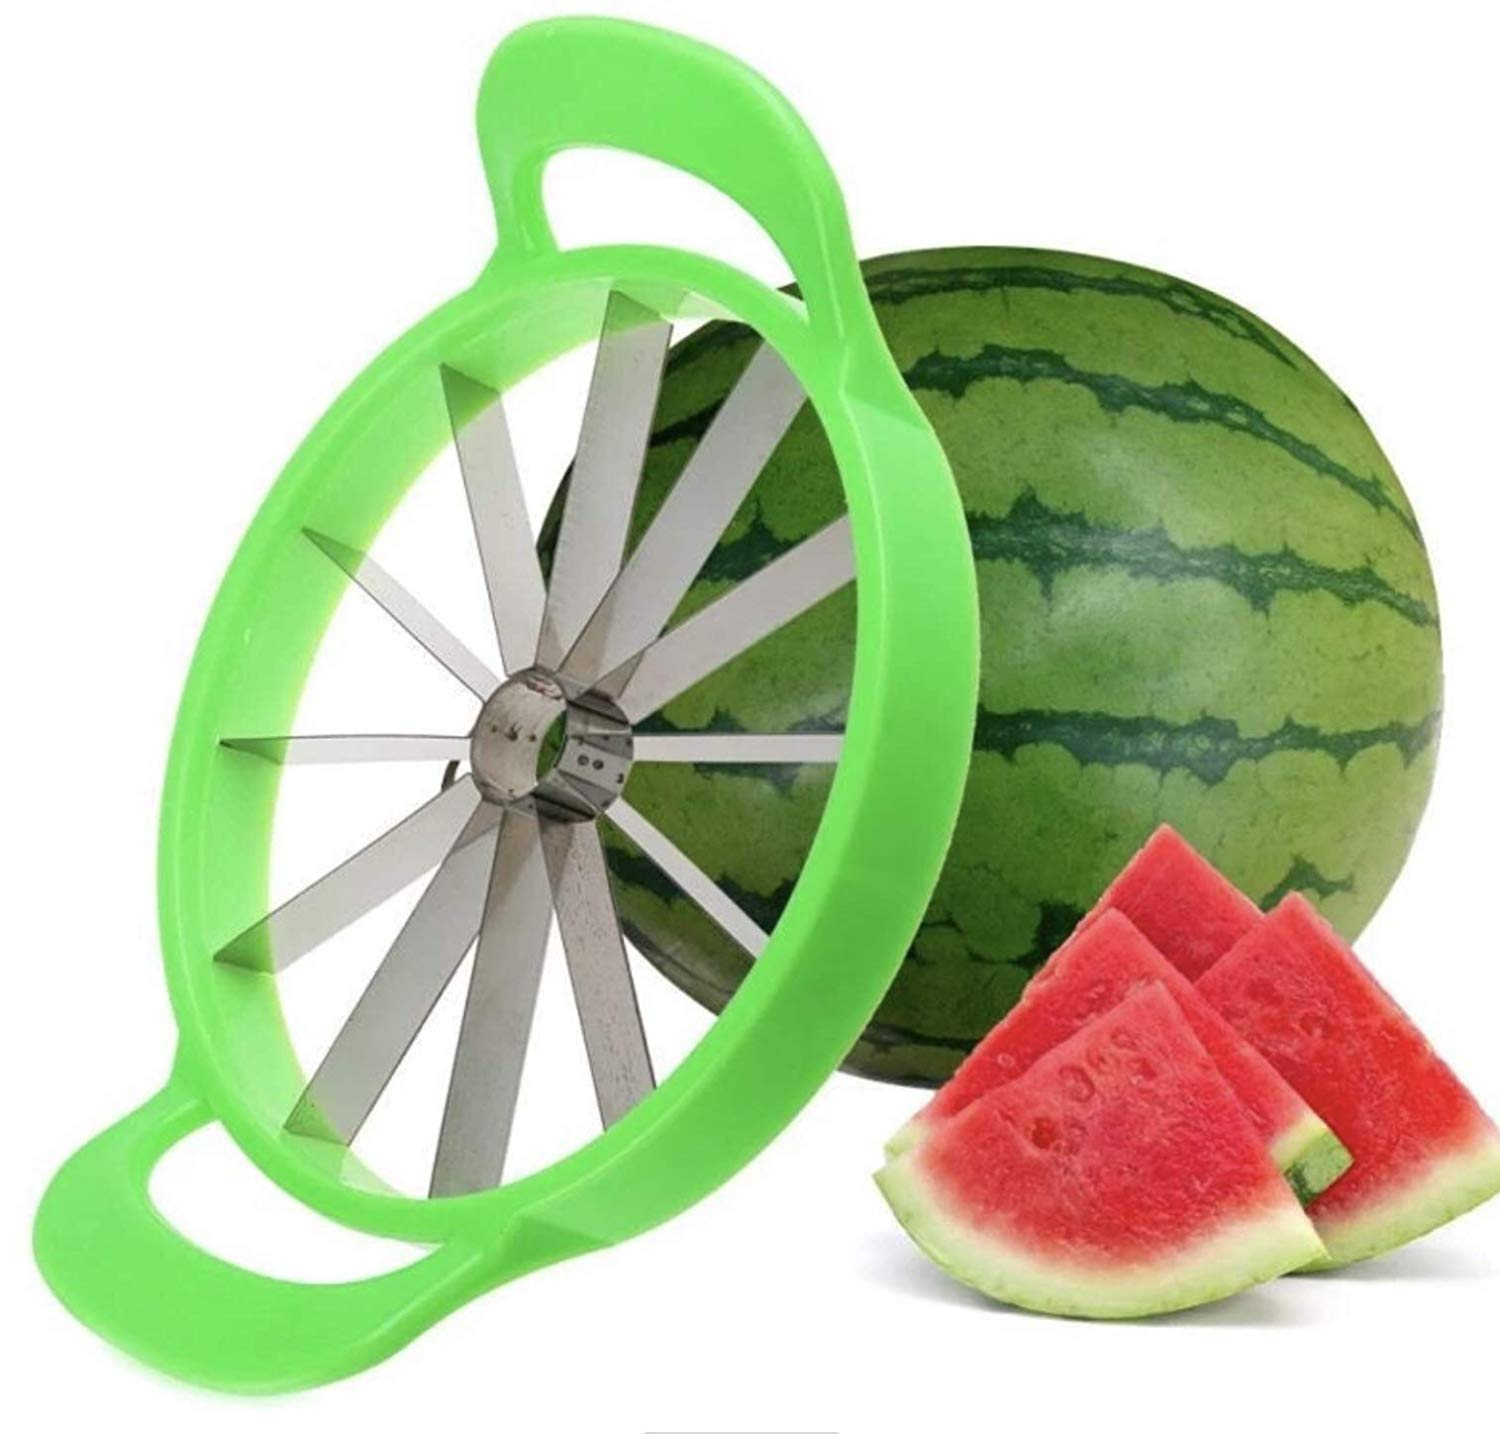 Omaky Stainless Steel Watermelon Slicer Cutter Knife Corer Fruit Vegetable Tools Kitchen Gadgets (1) by Omaky